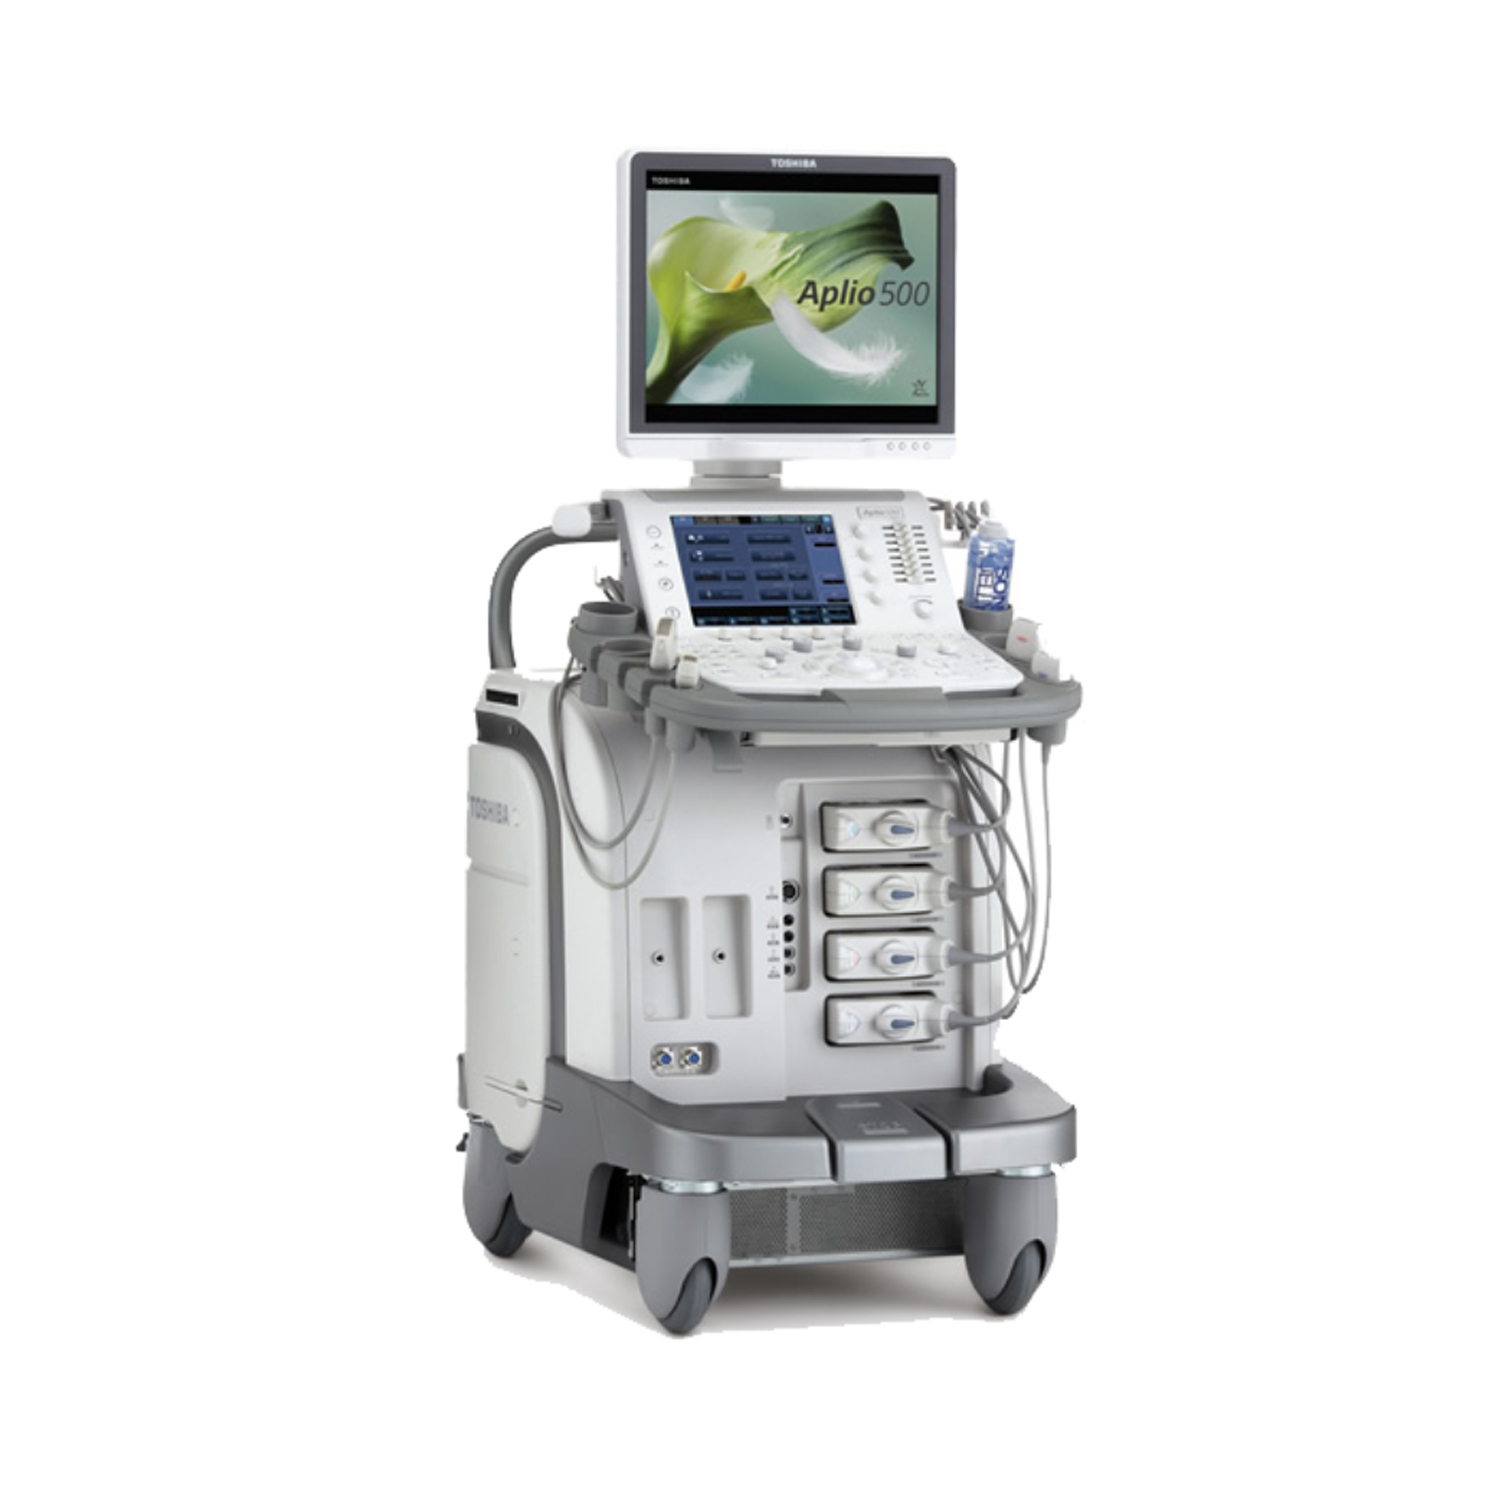 Toshiba Aplio 500 Ultrasound Machine